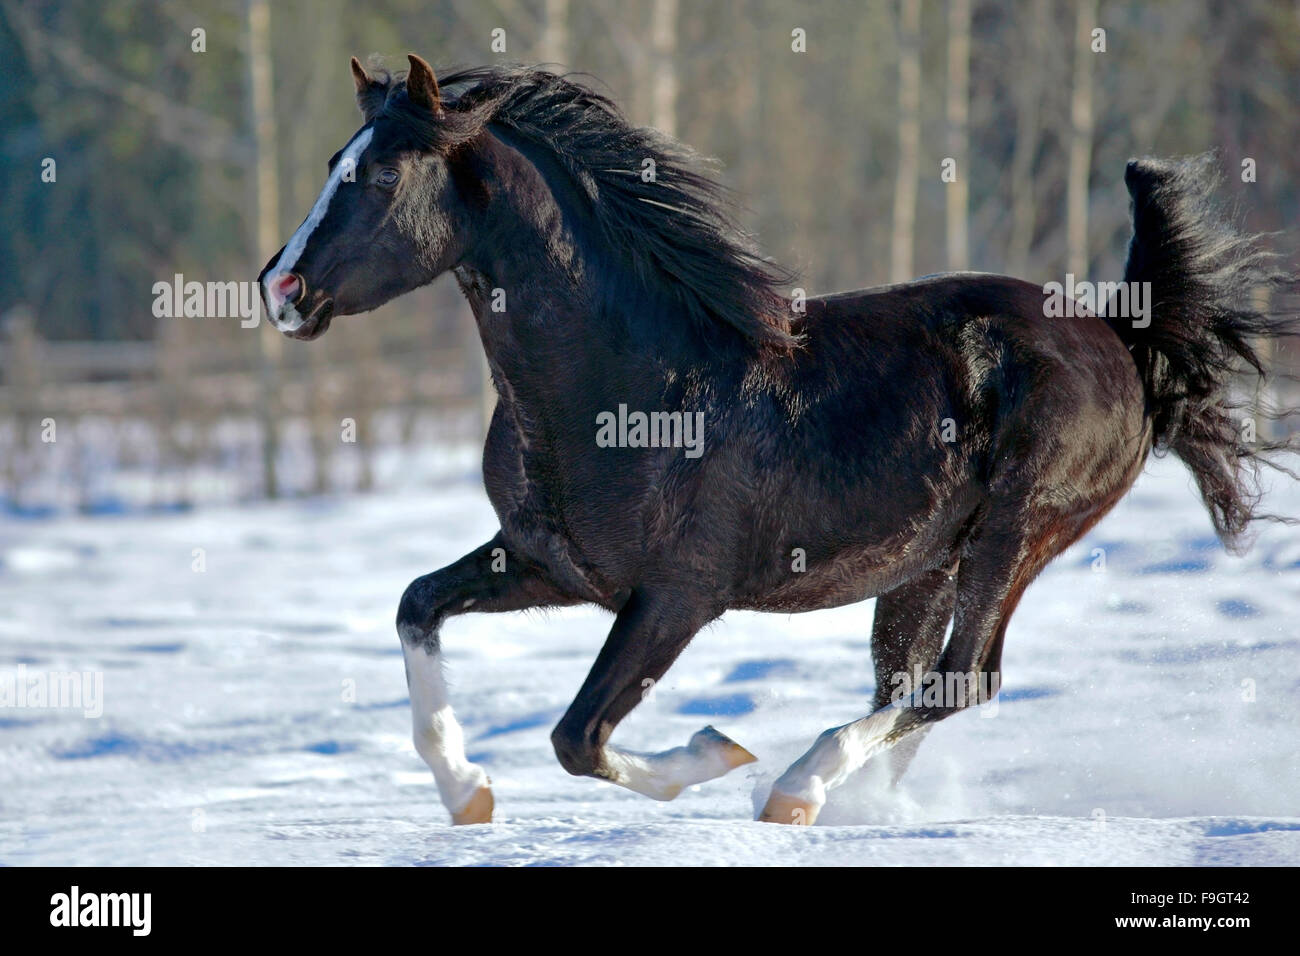 Black Arabian Stallion galloping on snow - Stock Image